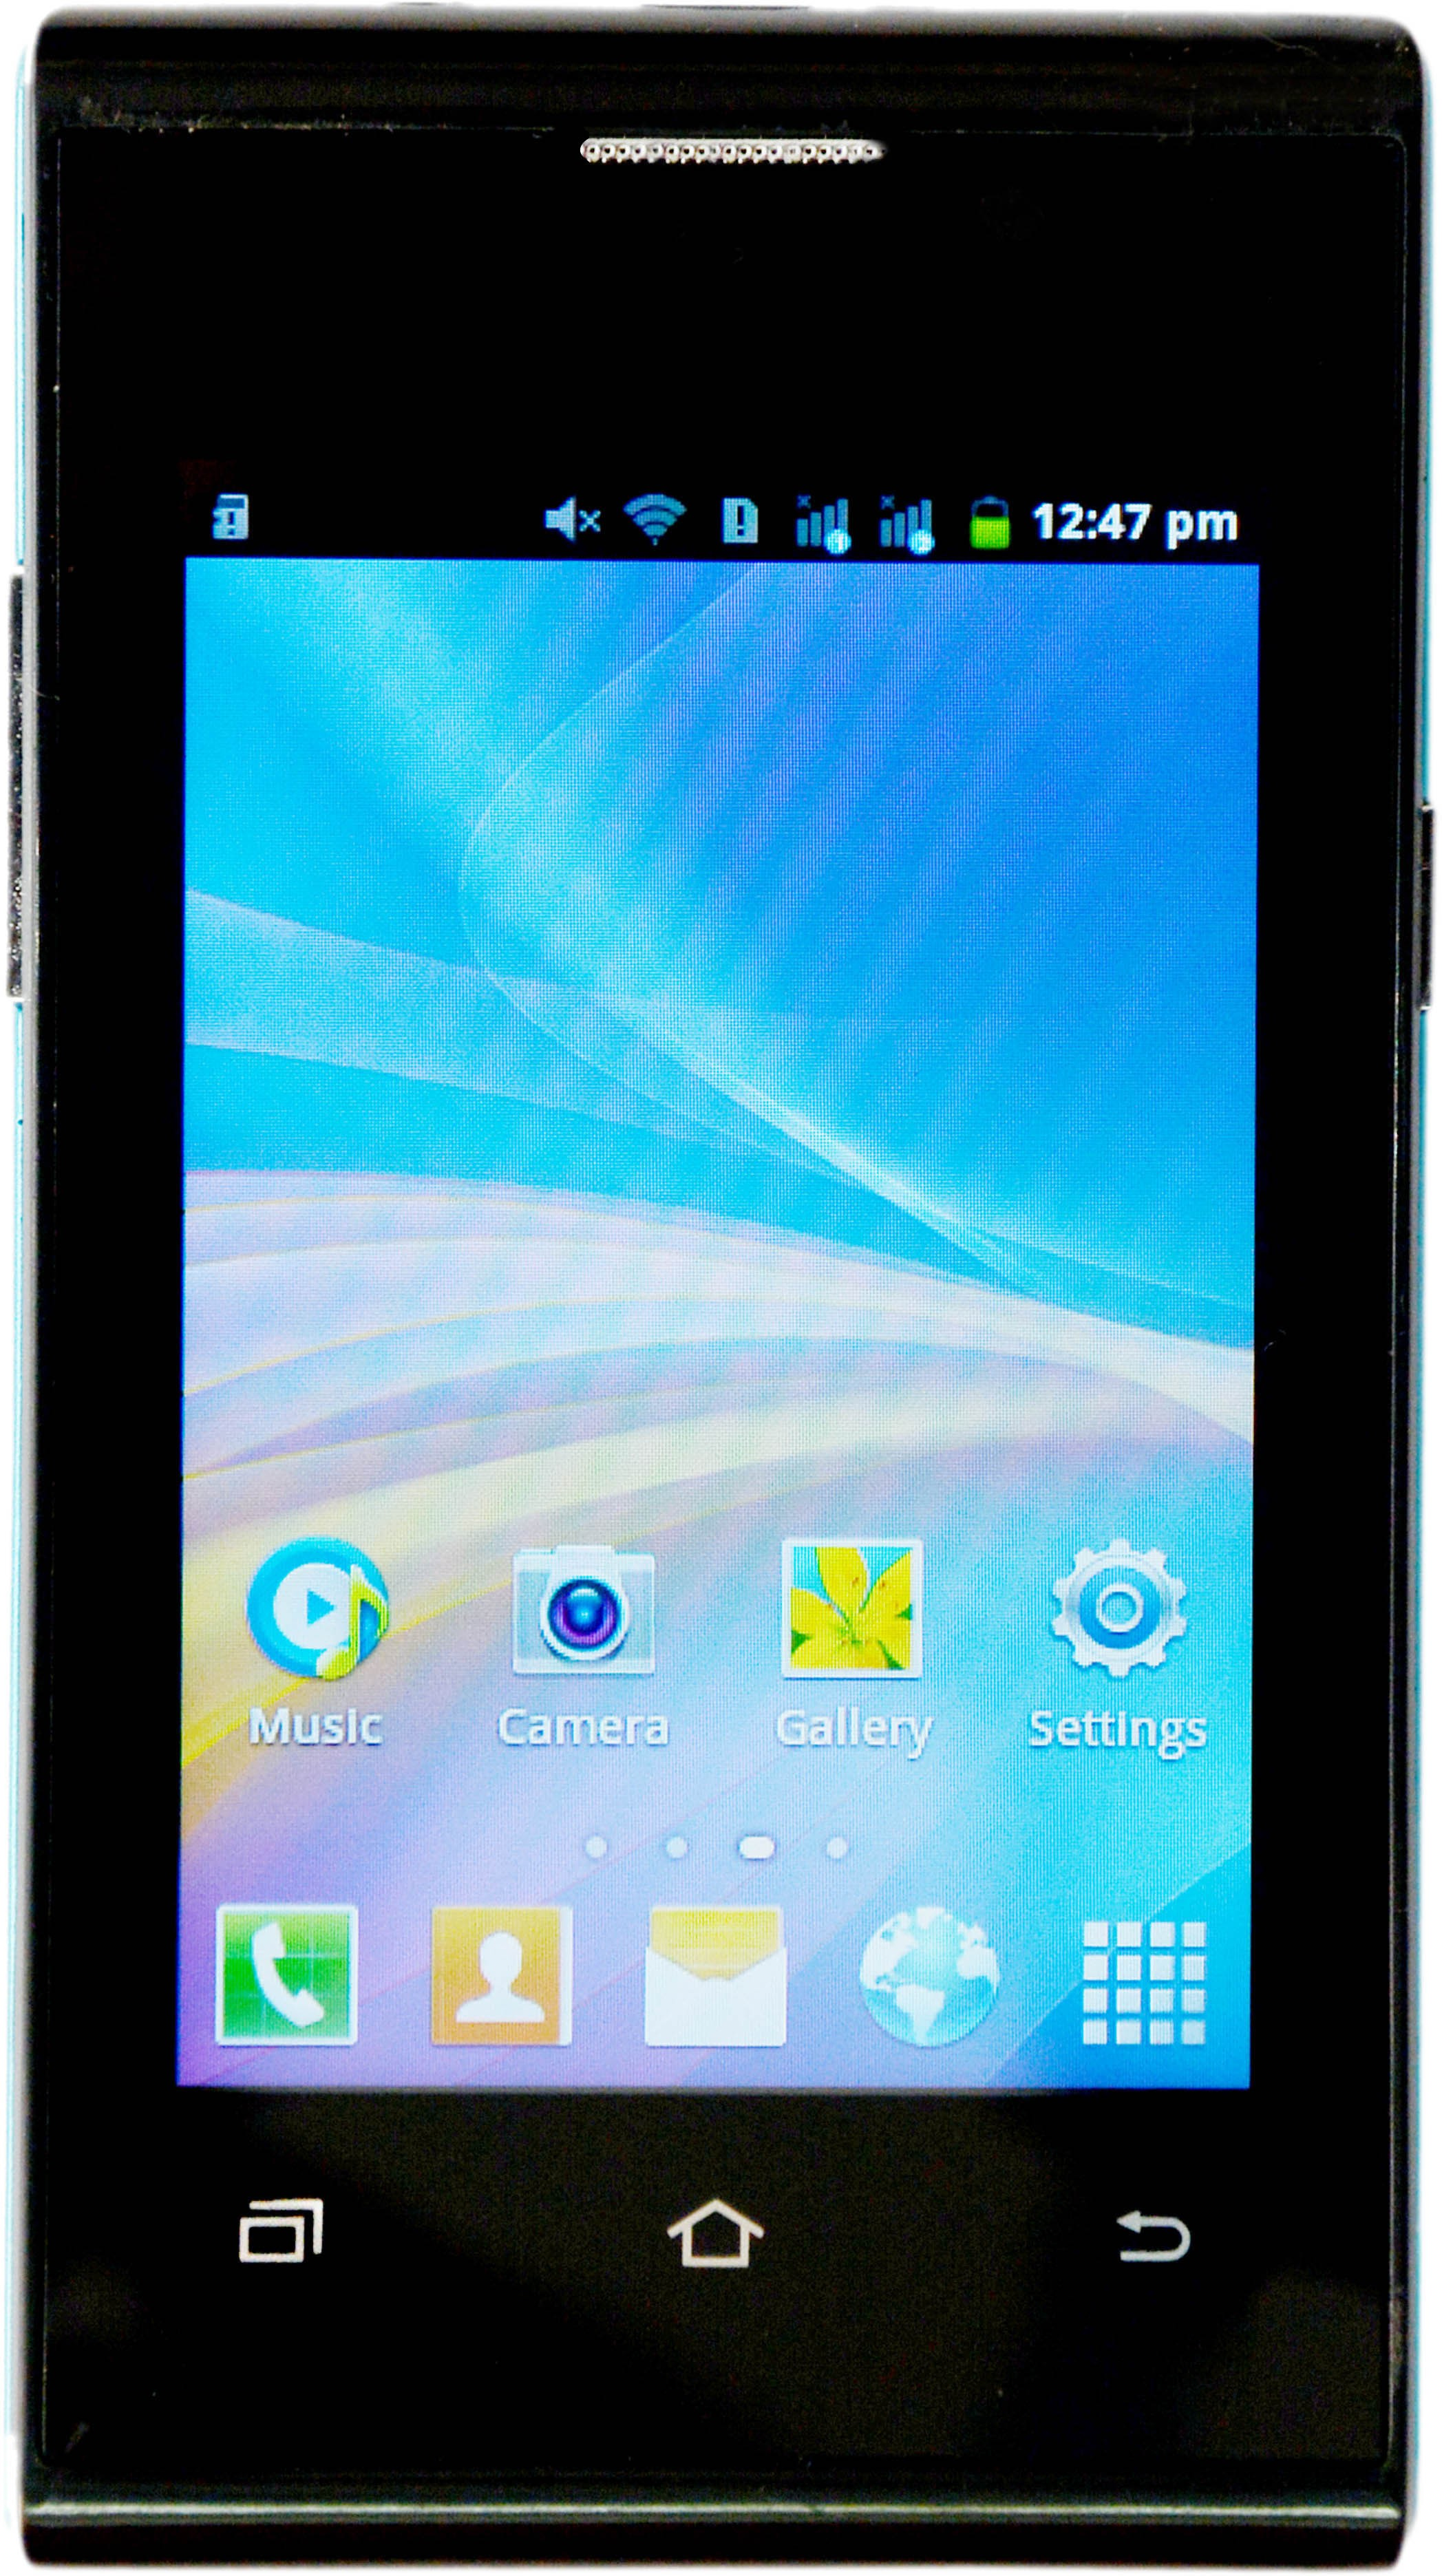 Monix Android G310 (1GB RAM, 512MB)